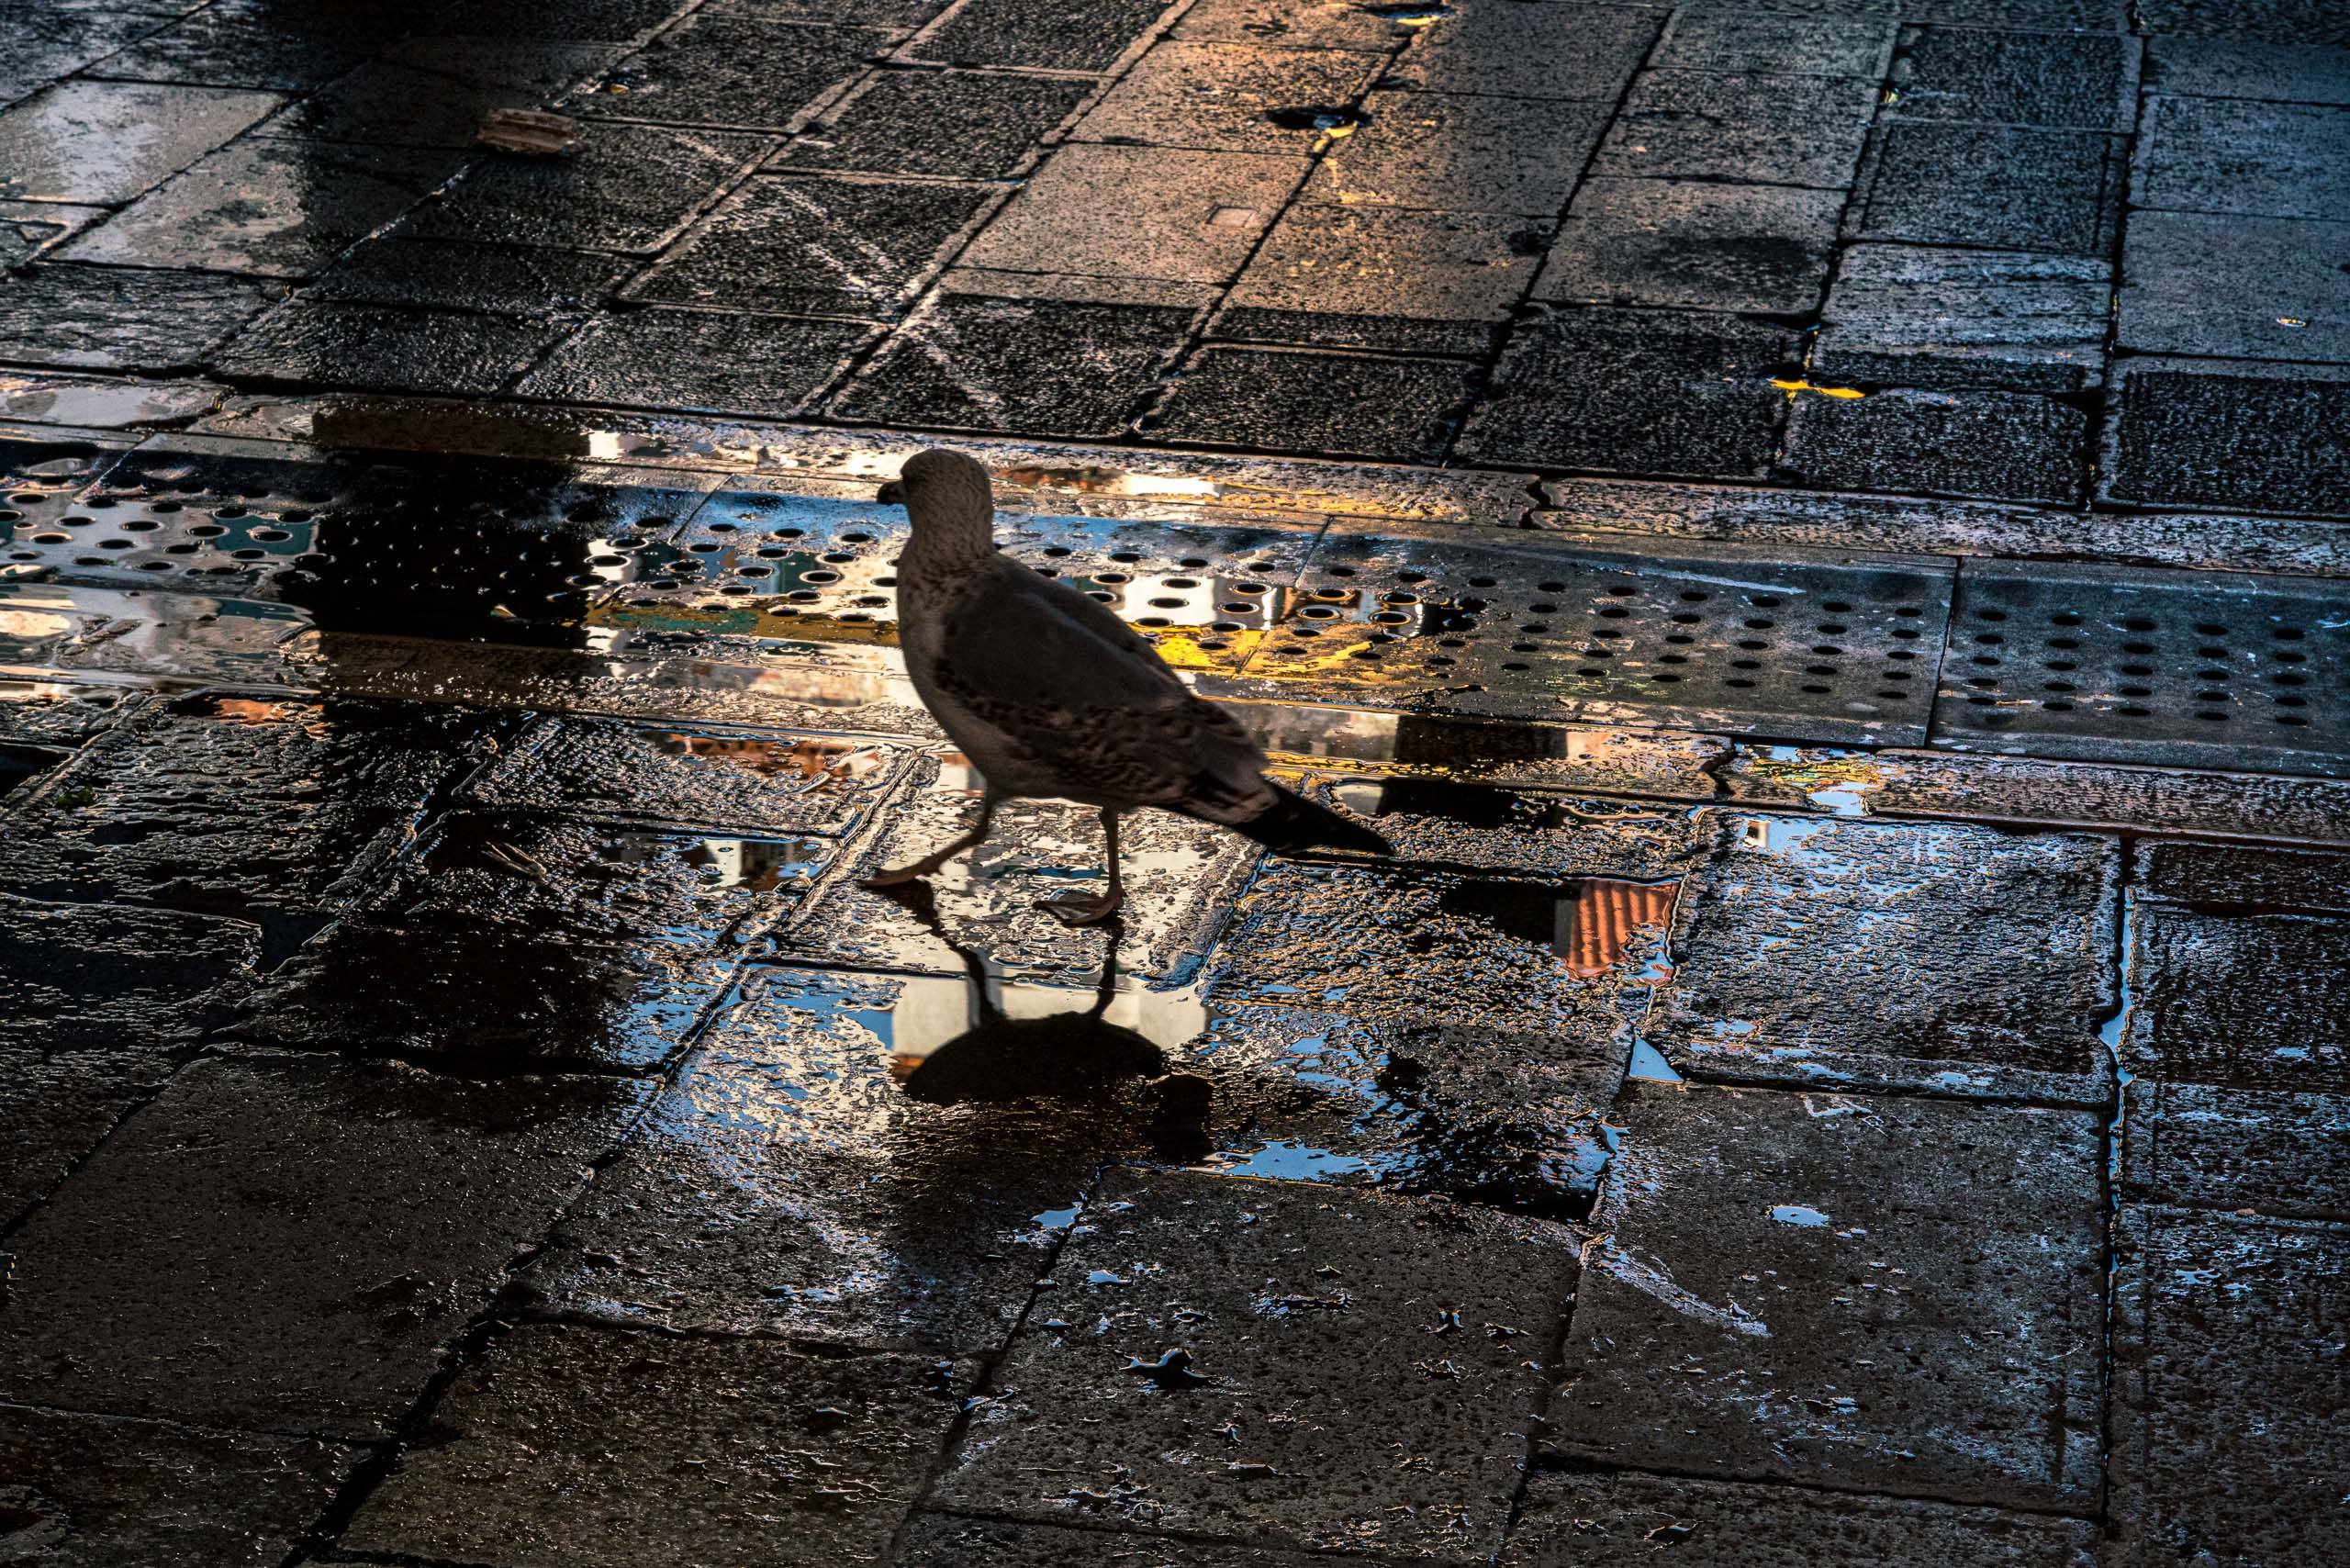 Travel and street photography of Venice or Venezia, Italy made by New York photographer Mary Catherine Messner (mcmessner).